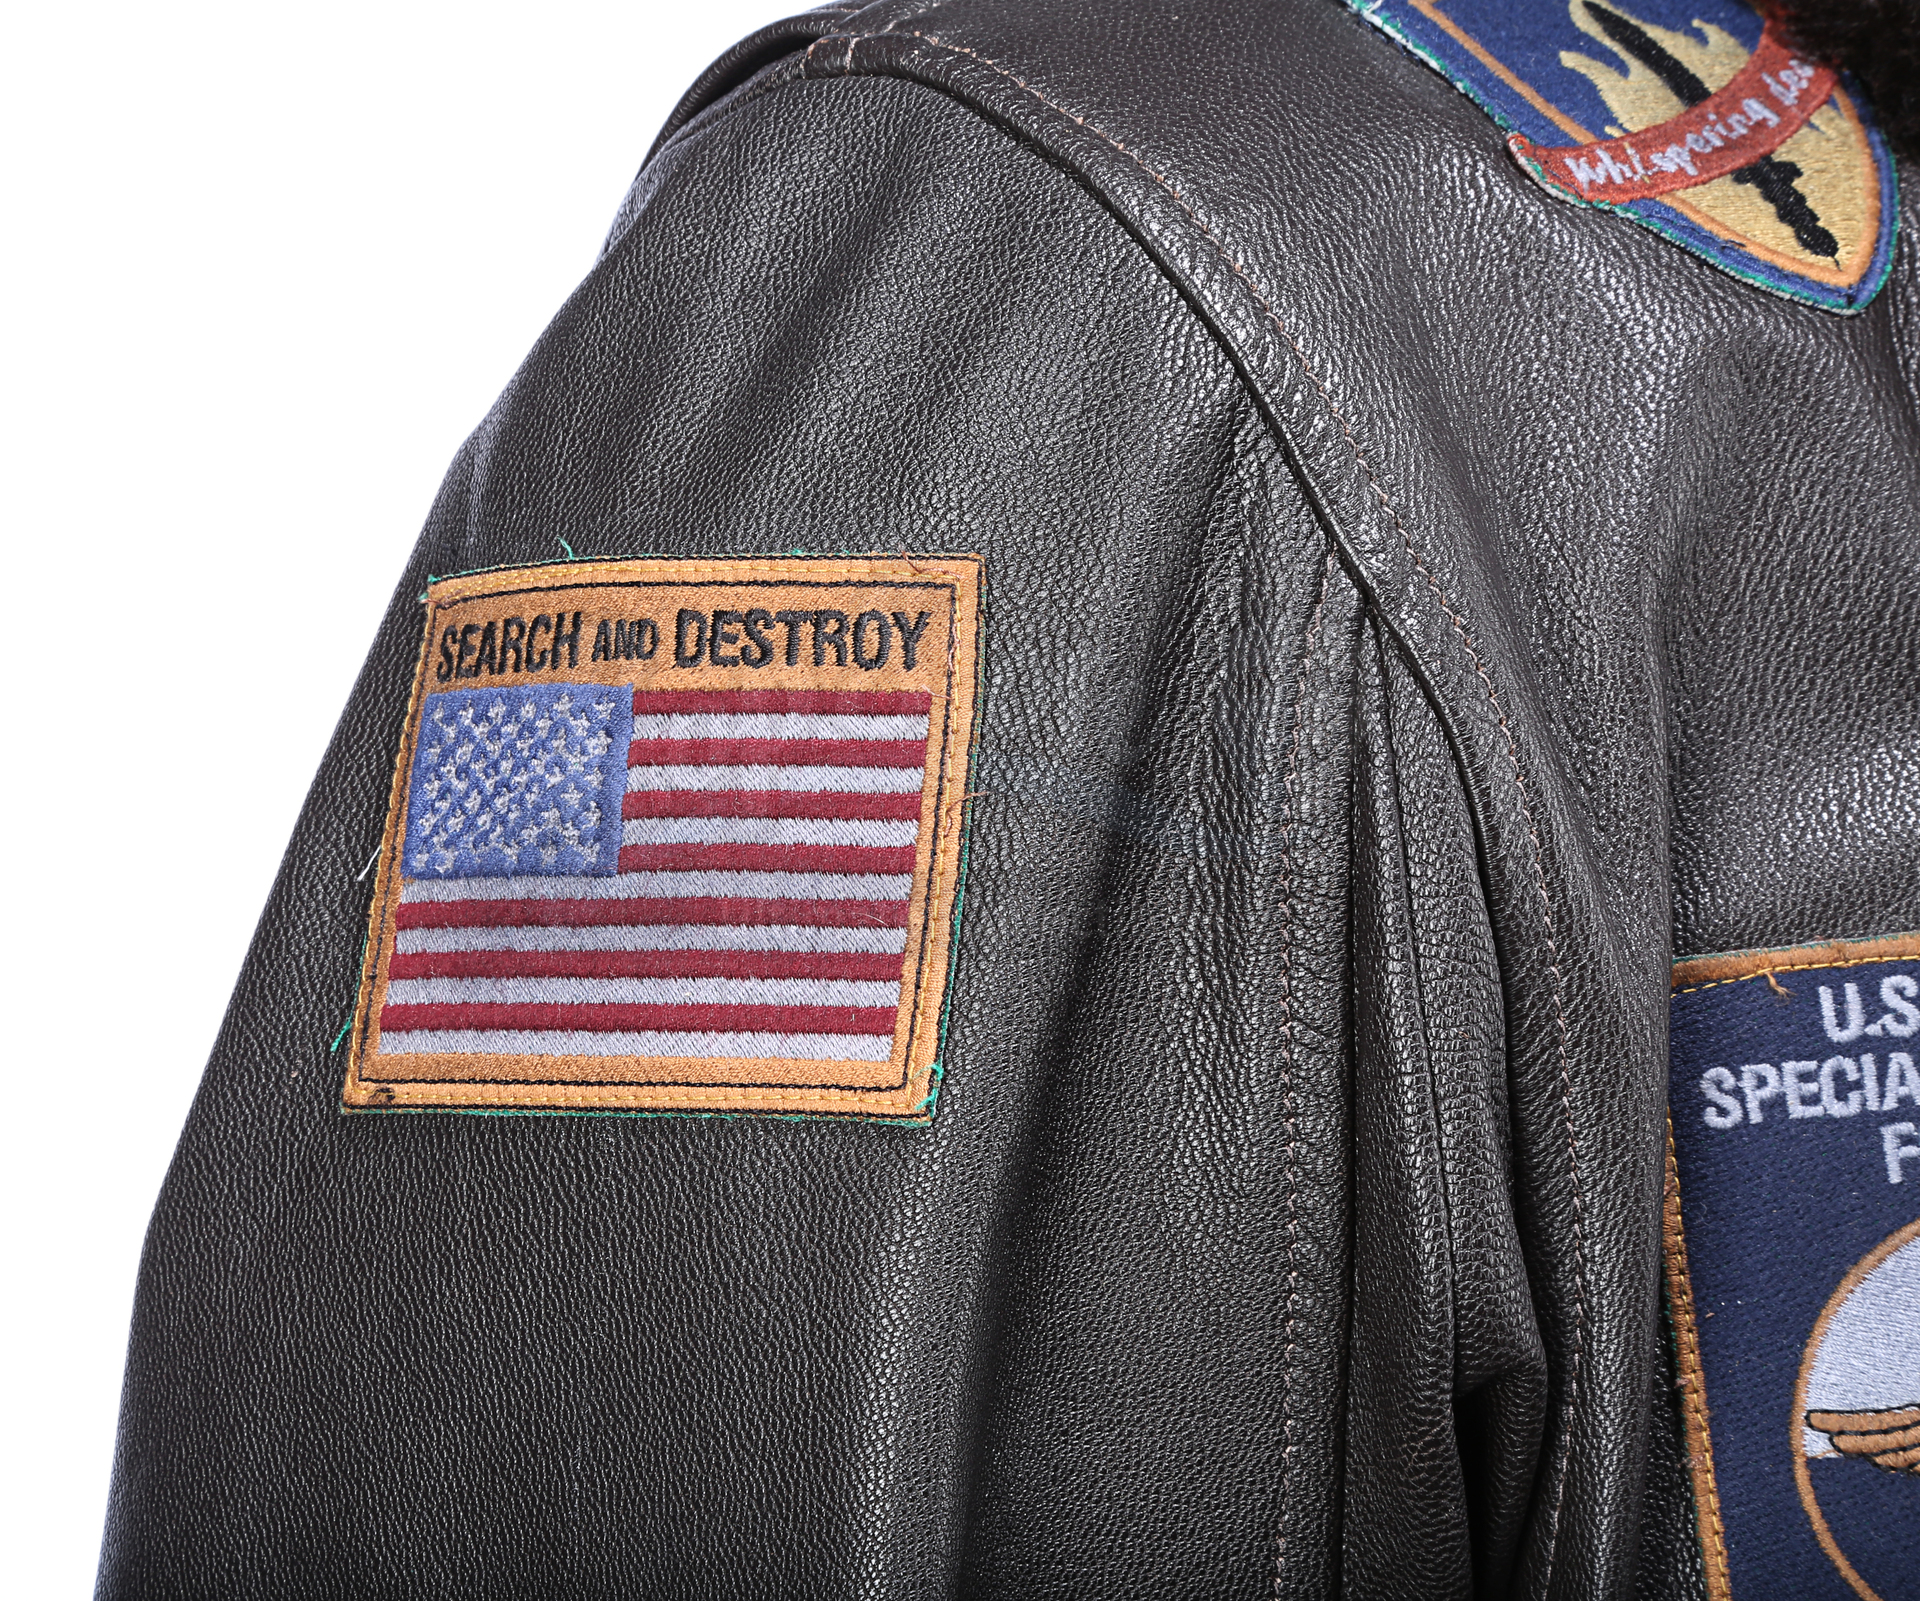 THE 6TH DAY (2000) - Adam Gibson's (Arnold Schwarzenegger) Leather Jacket - Image 6 of 15